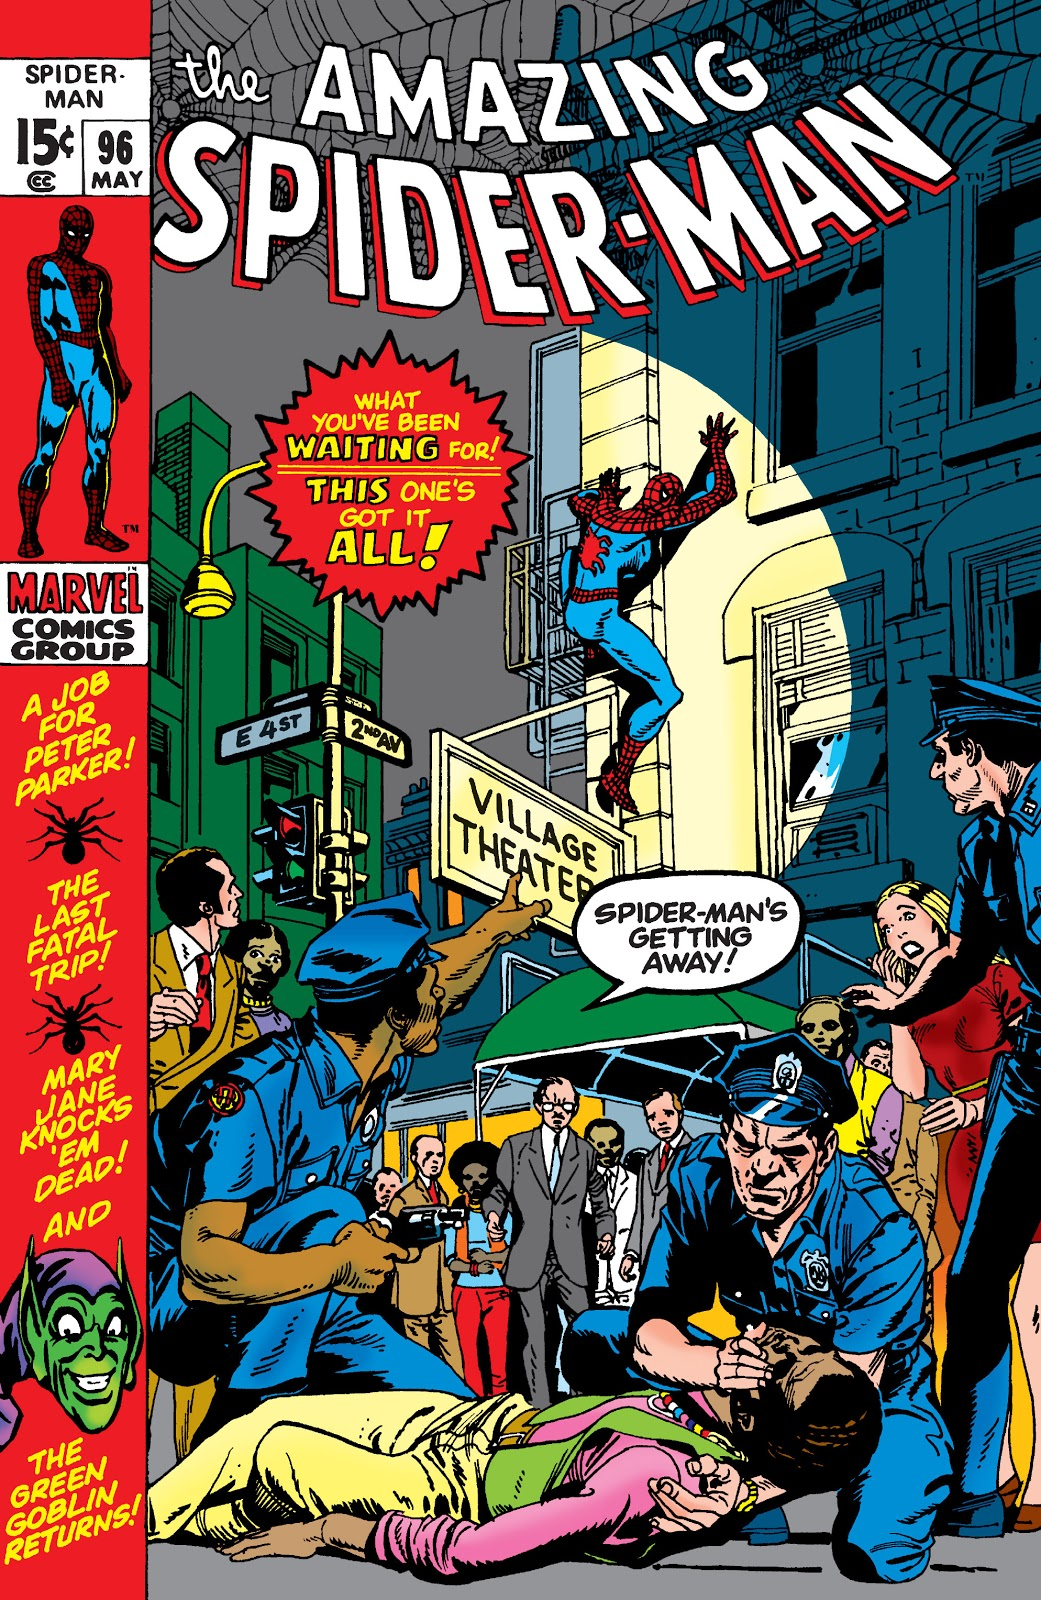 Image result for amazing spider-man 96